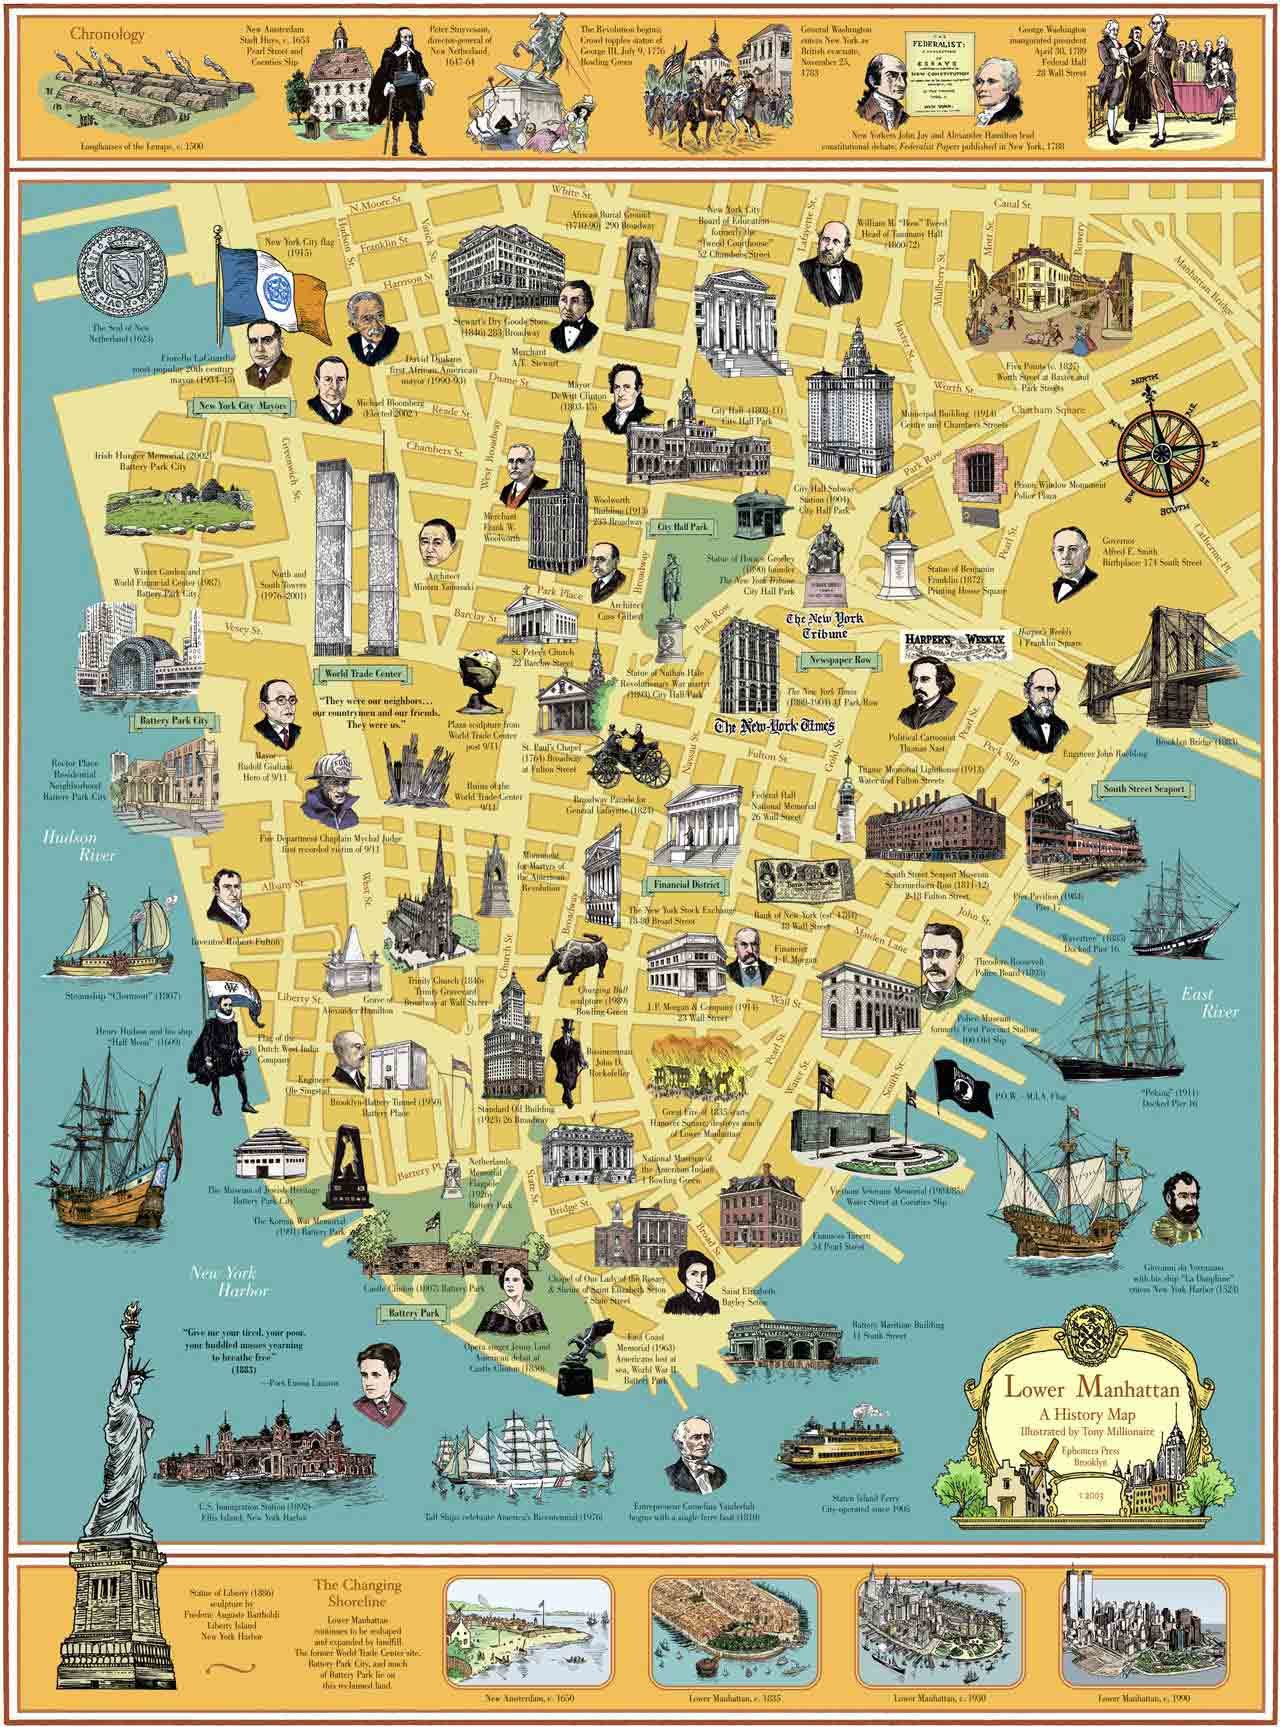 Lower Manhattan A History Map Ephemera Press – New York City Tourist Map